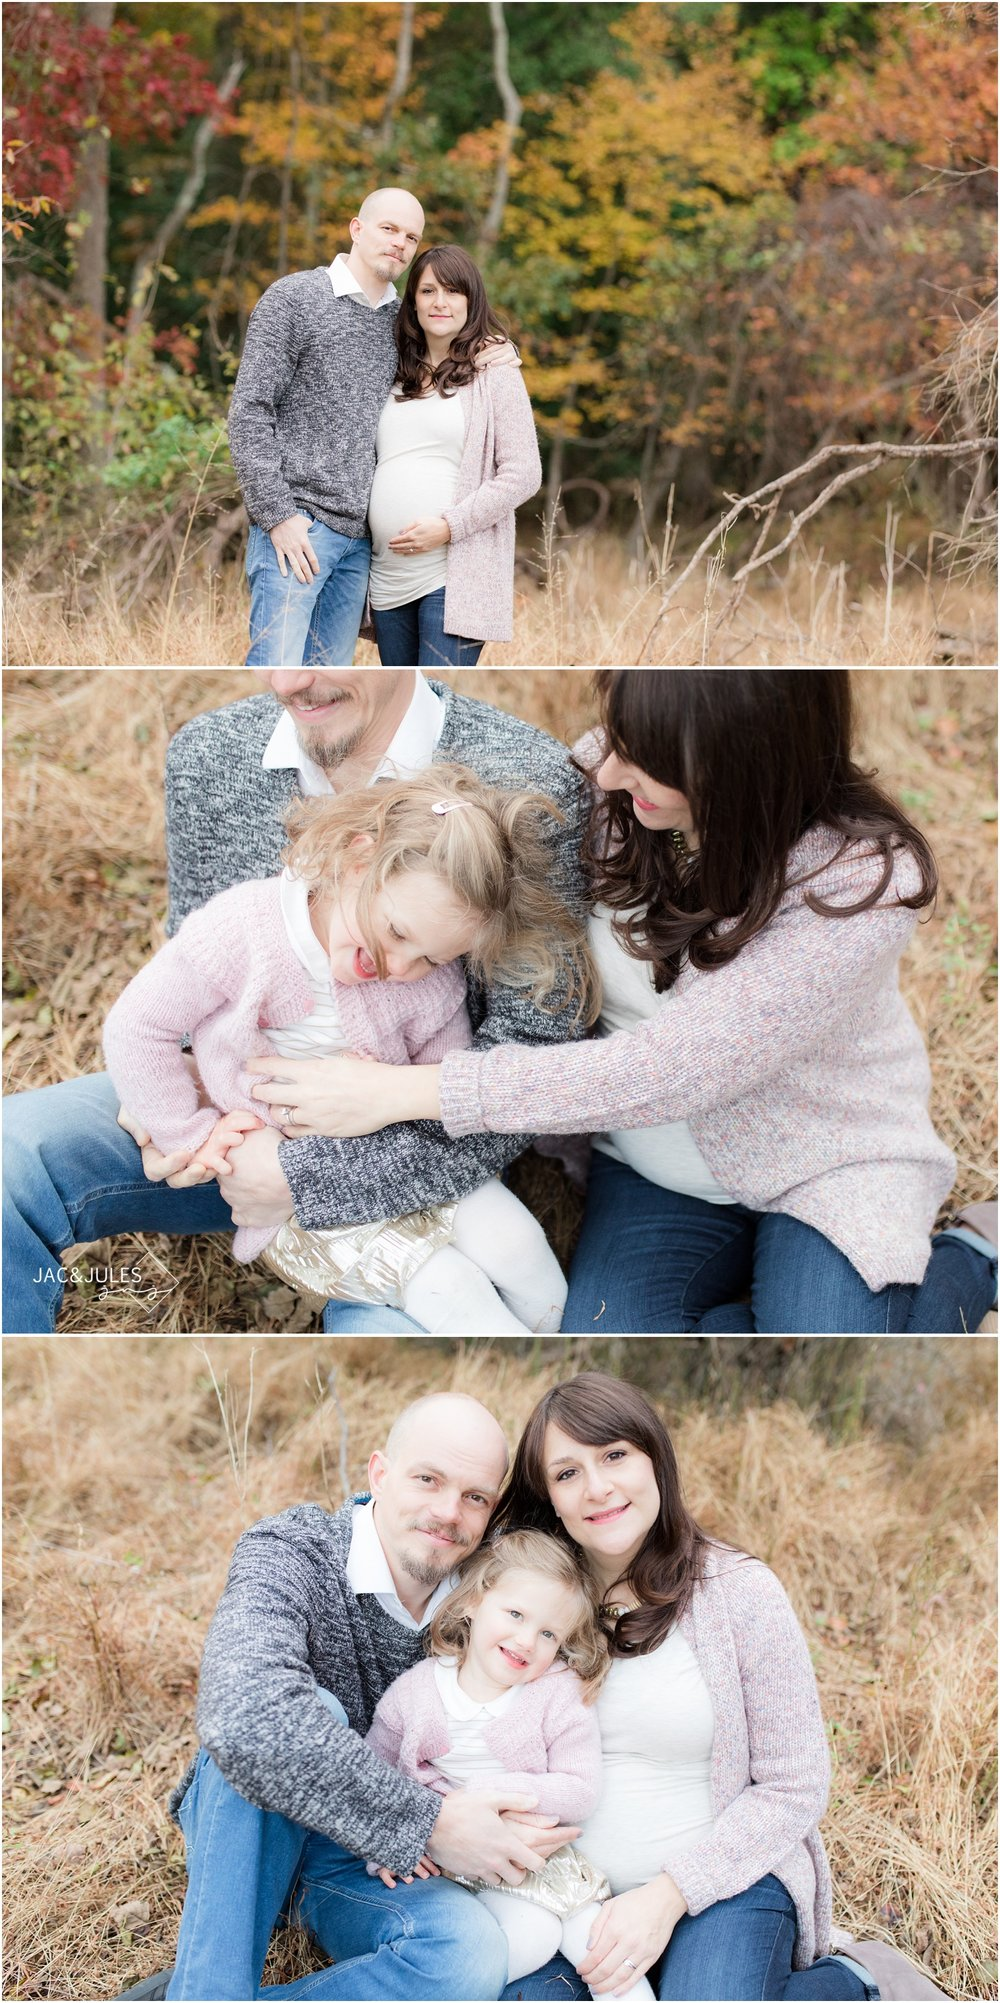 playful maternity photos at allaire state park in the fall.